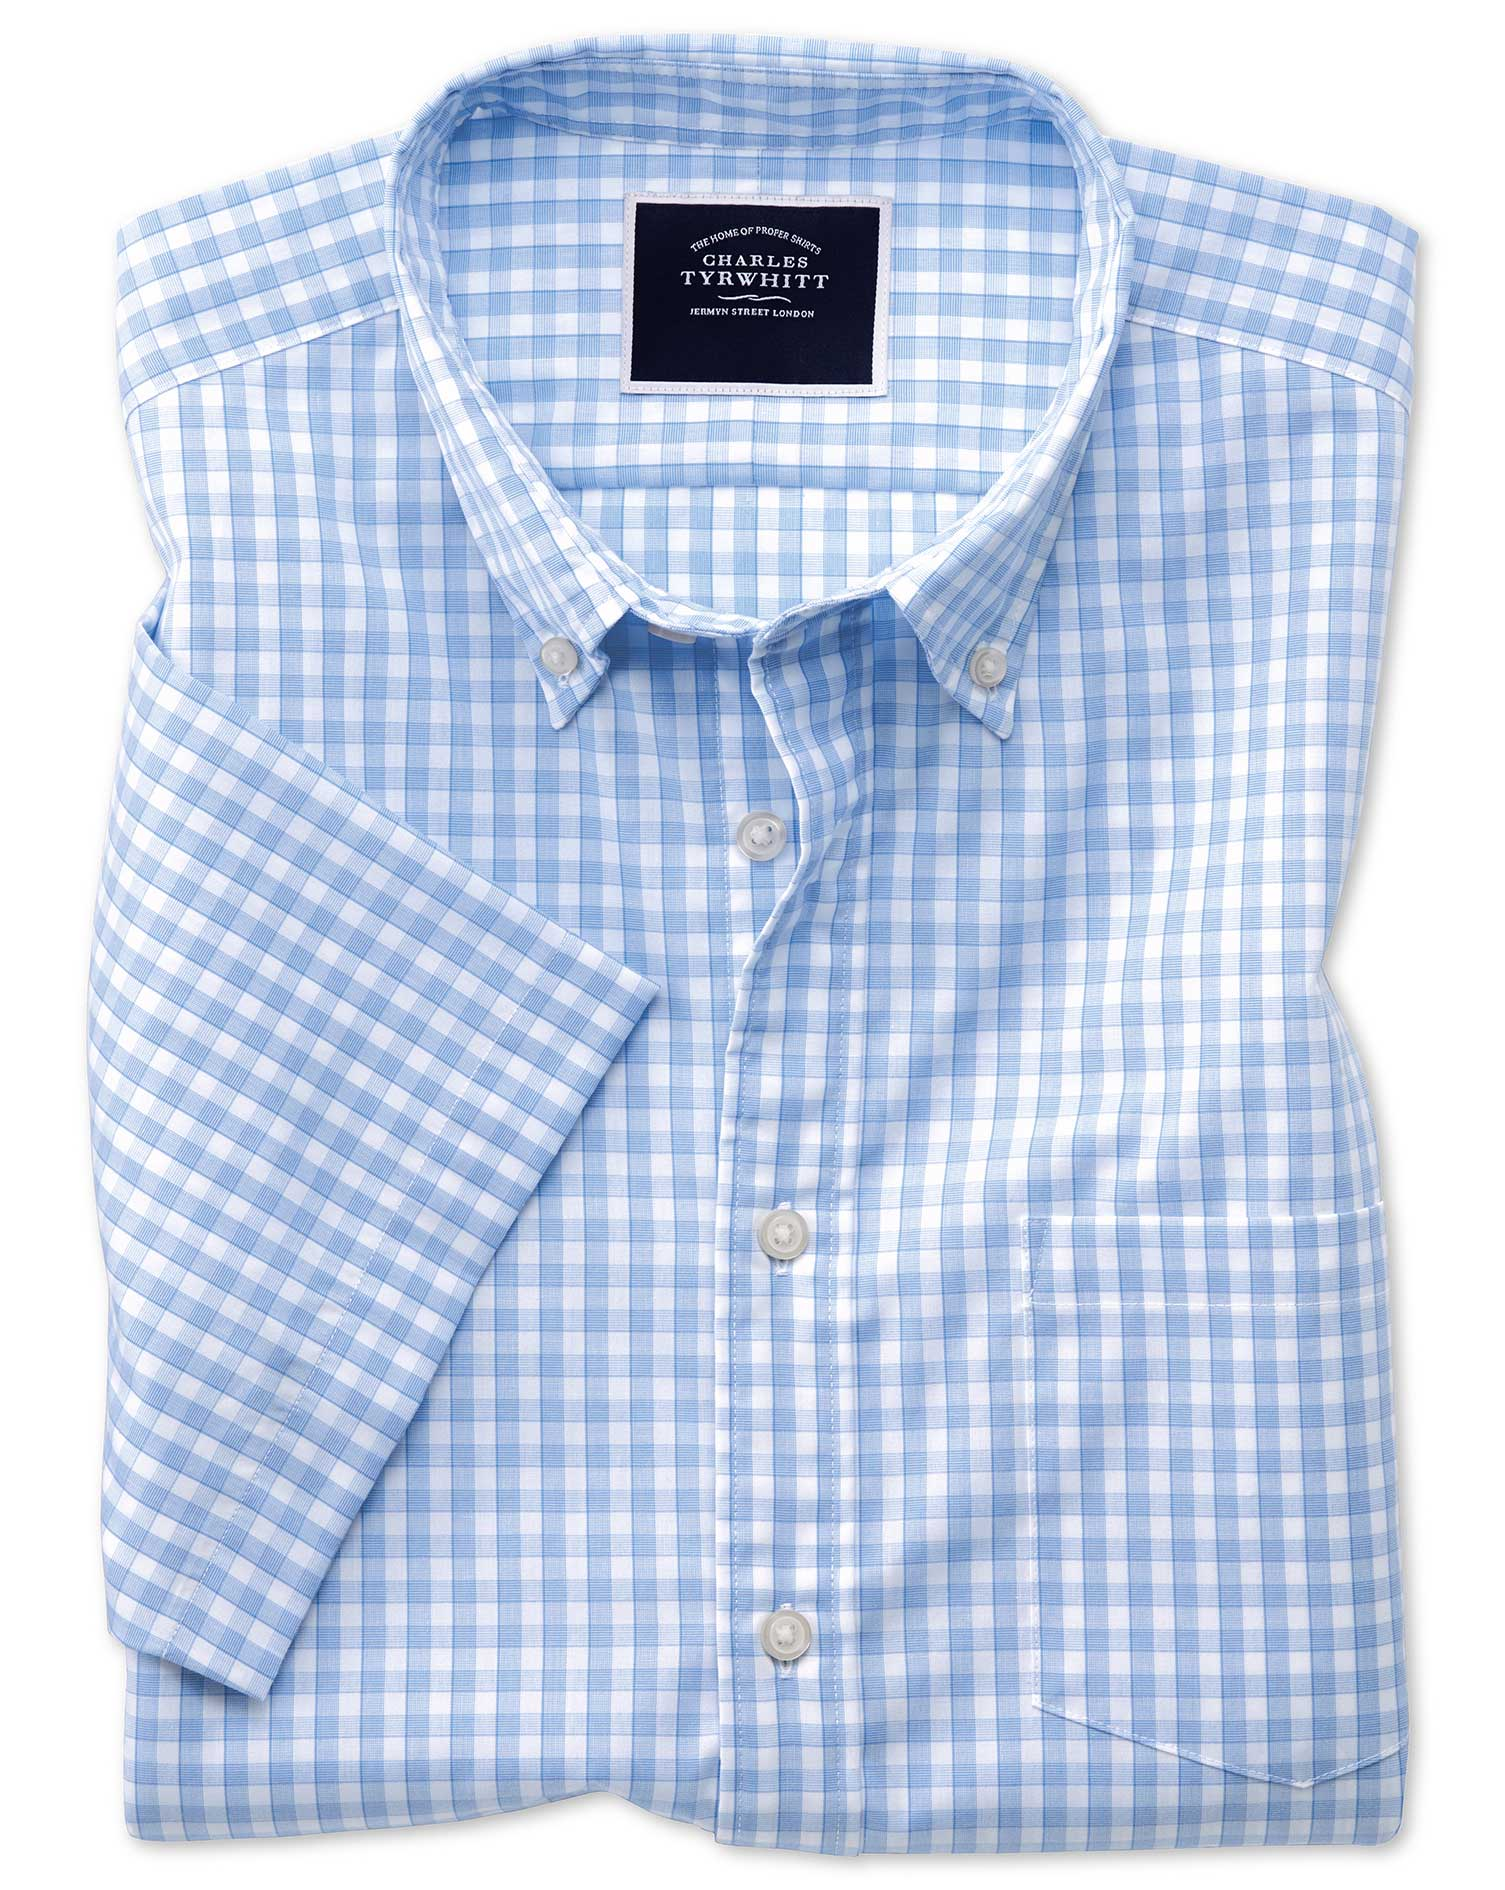 Slim Fit Sky Short Sleeve Gingham Soft Washed Non-Iron Tyrwhitt Cool Cotton Shirt Single Cuff Size L